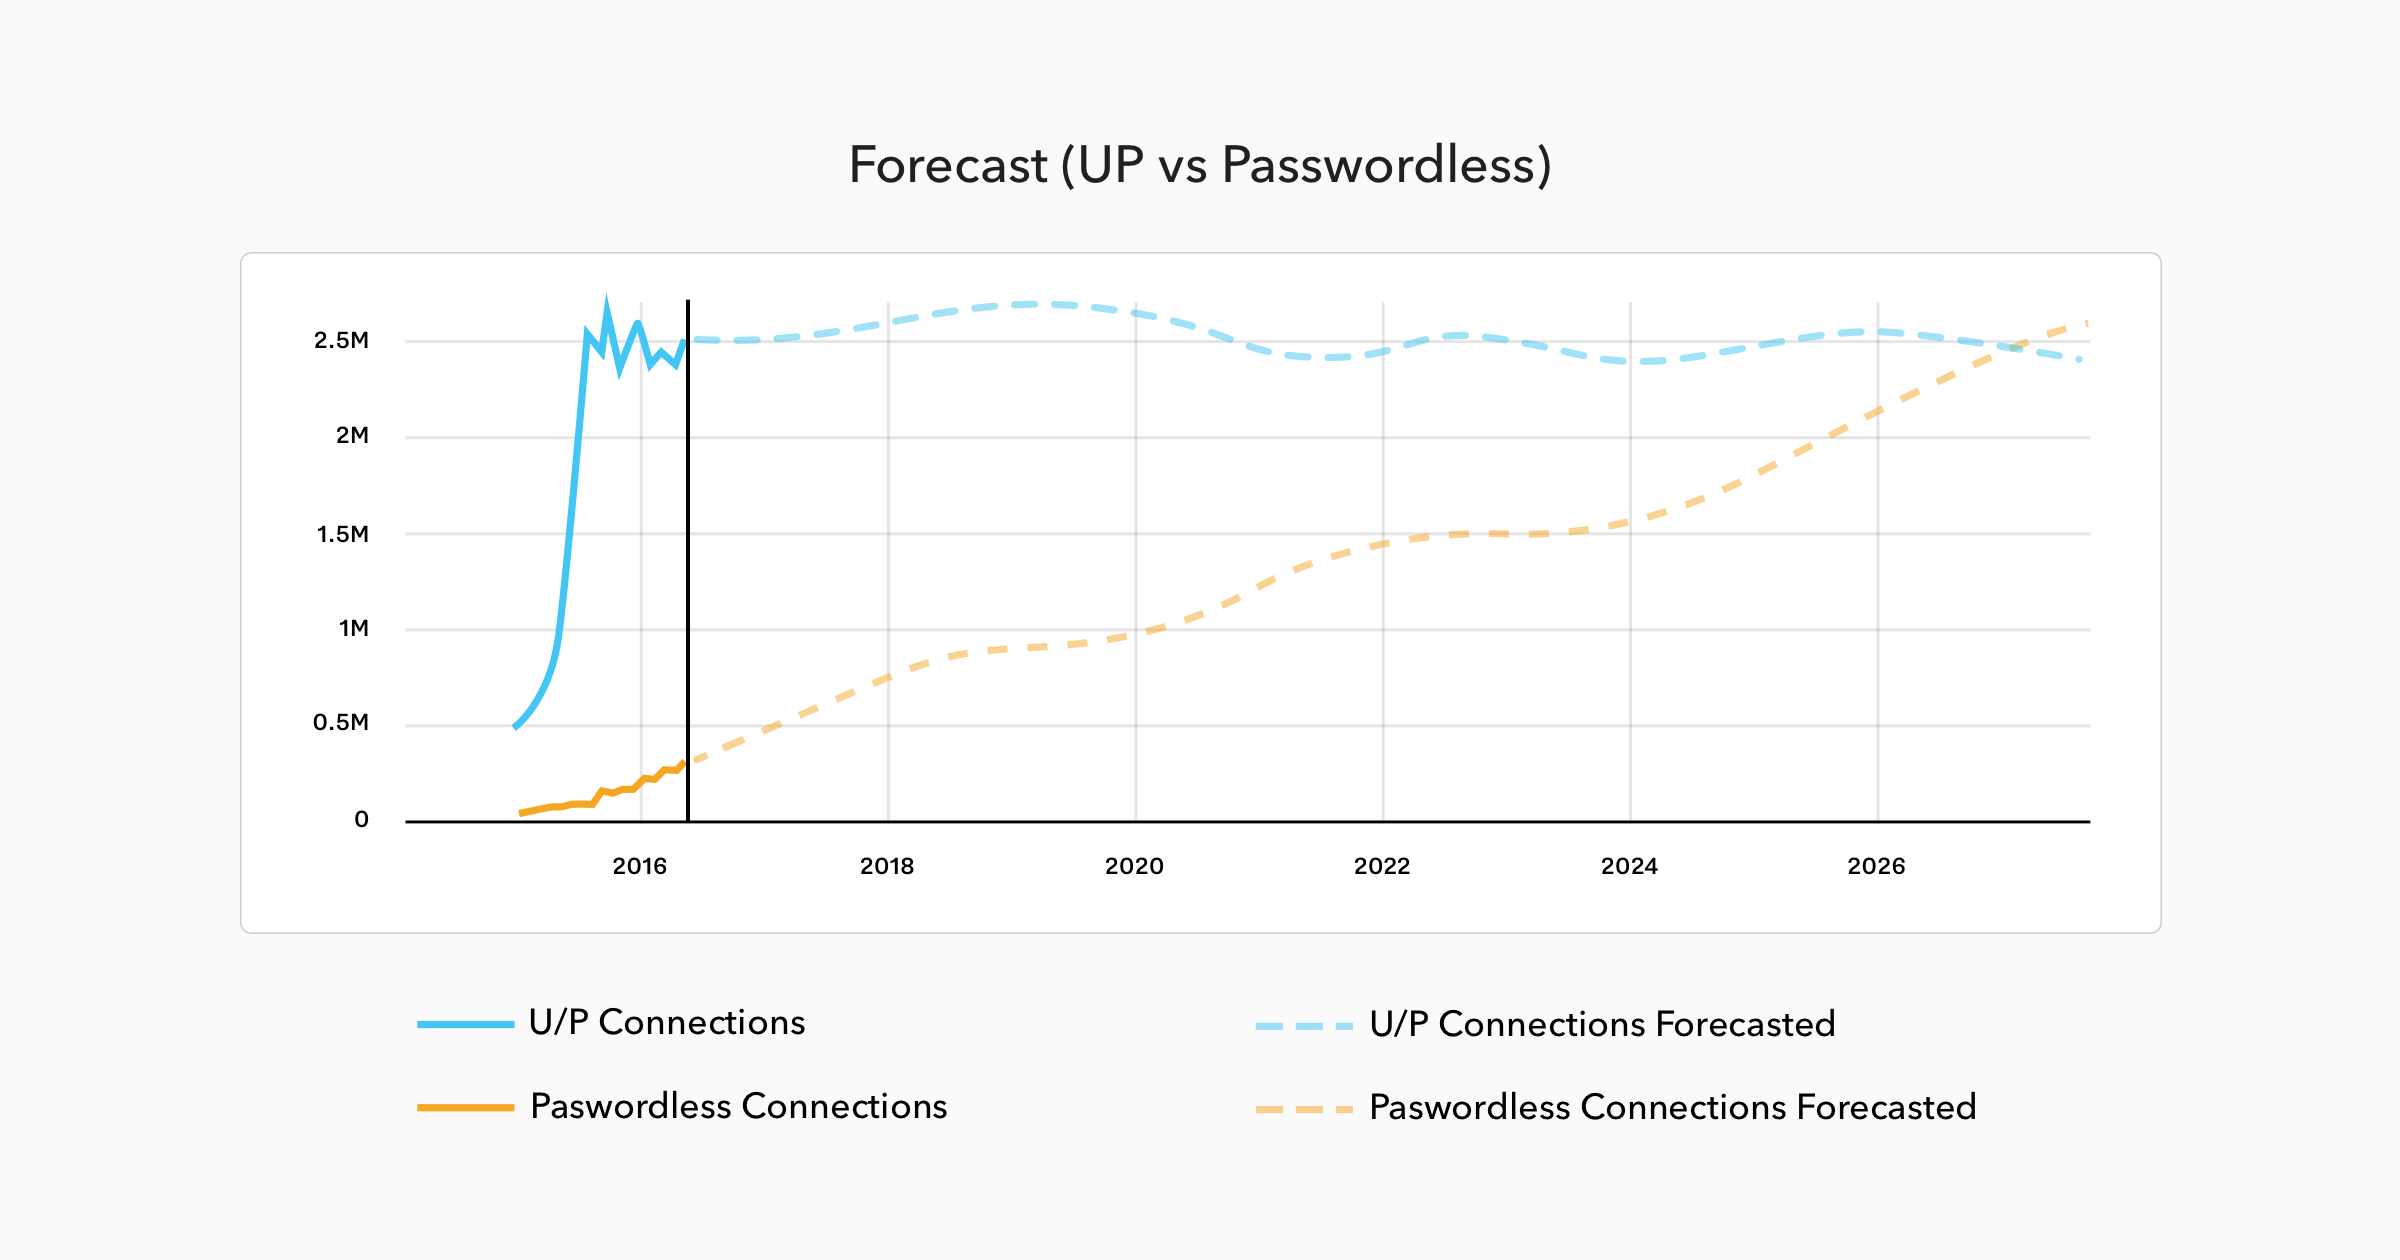 Forecast: User/Password Connections vs Passwordless Connections